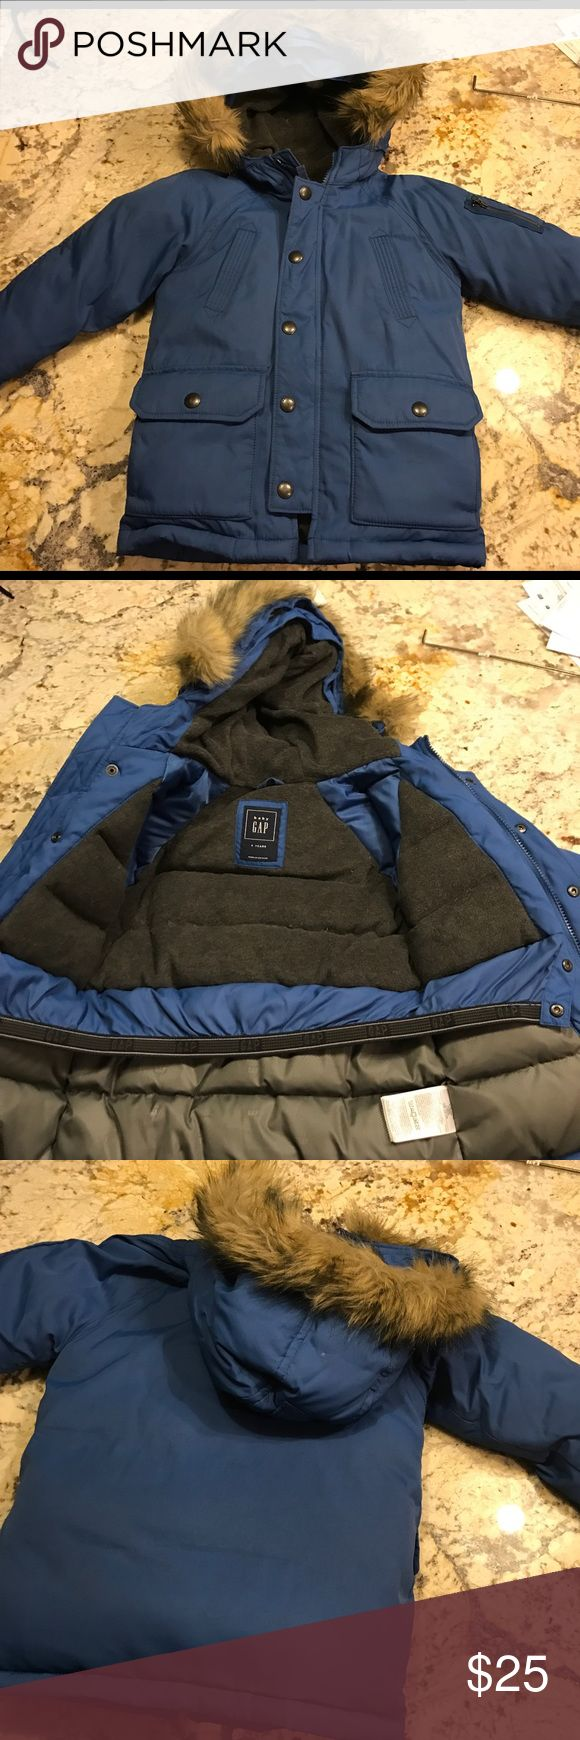 GAP boys winter coat Beautiful, thick, warm quality winter coat from GAP kids. Size 4. Lots of pockets and the fur on the hood can come off (it's on with buttons). Super warm - perfect for cold winters! GAP Jackets & Coats